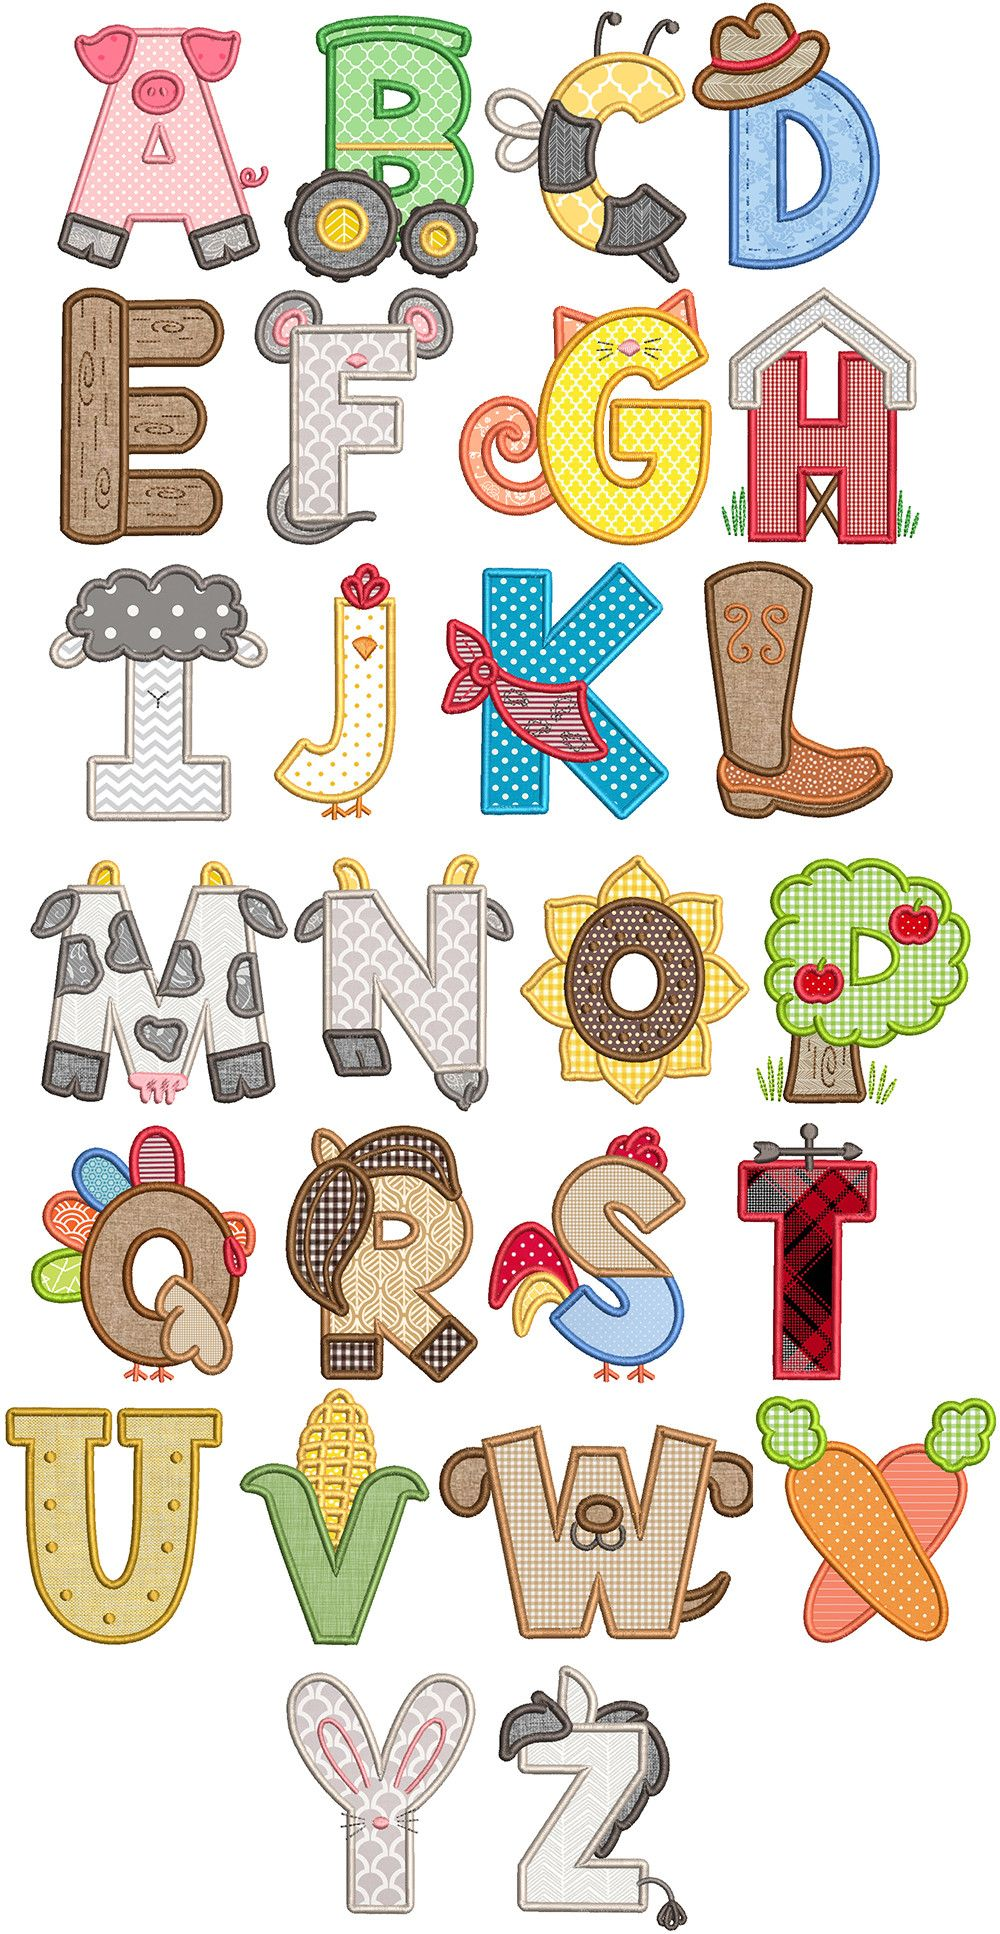 Farm Applique Alphabet Applique Letters Farm Applique Animal Alphabet Letters